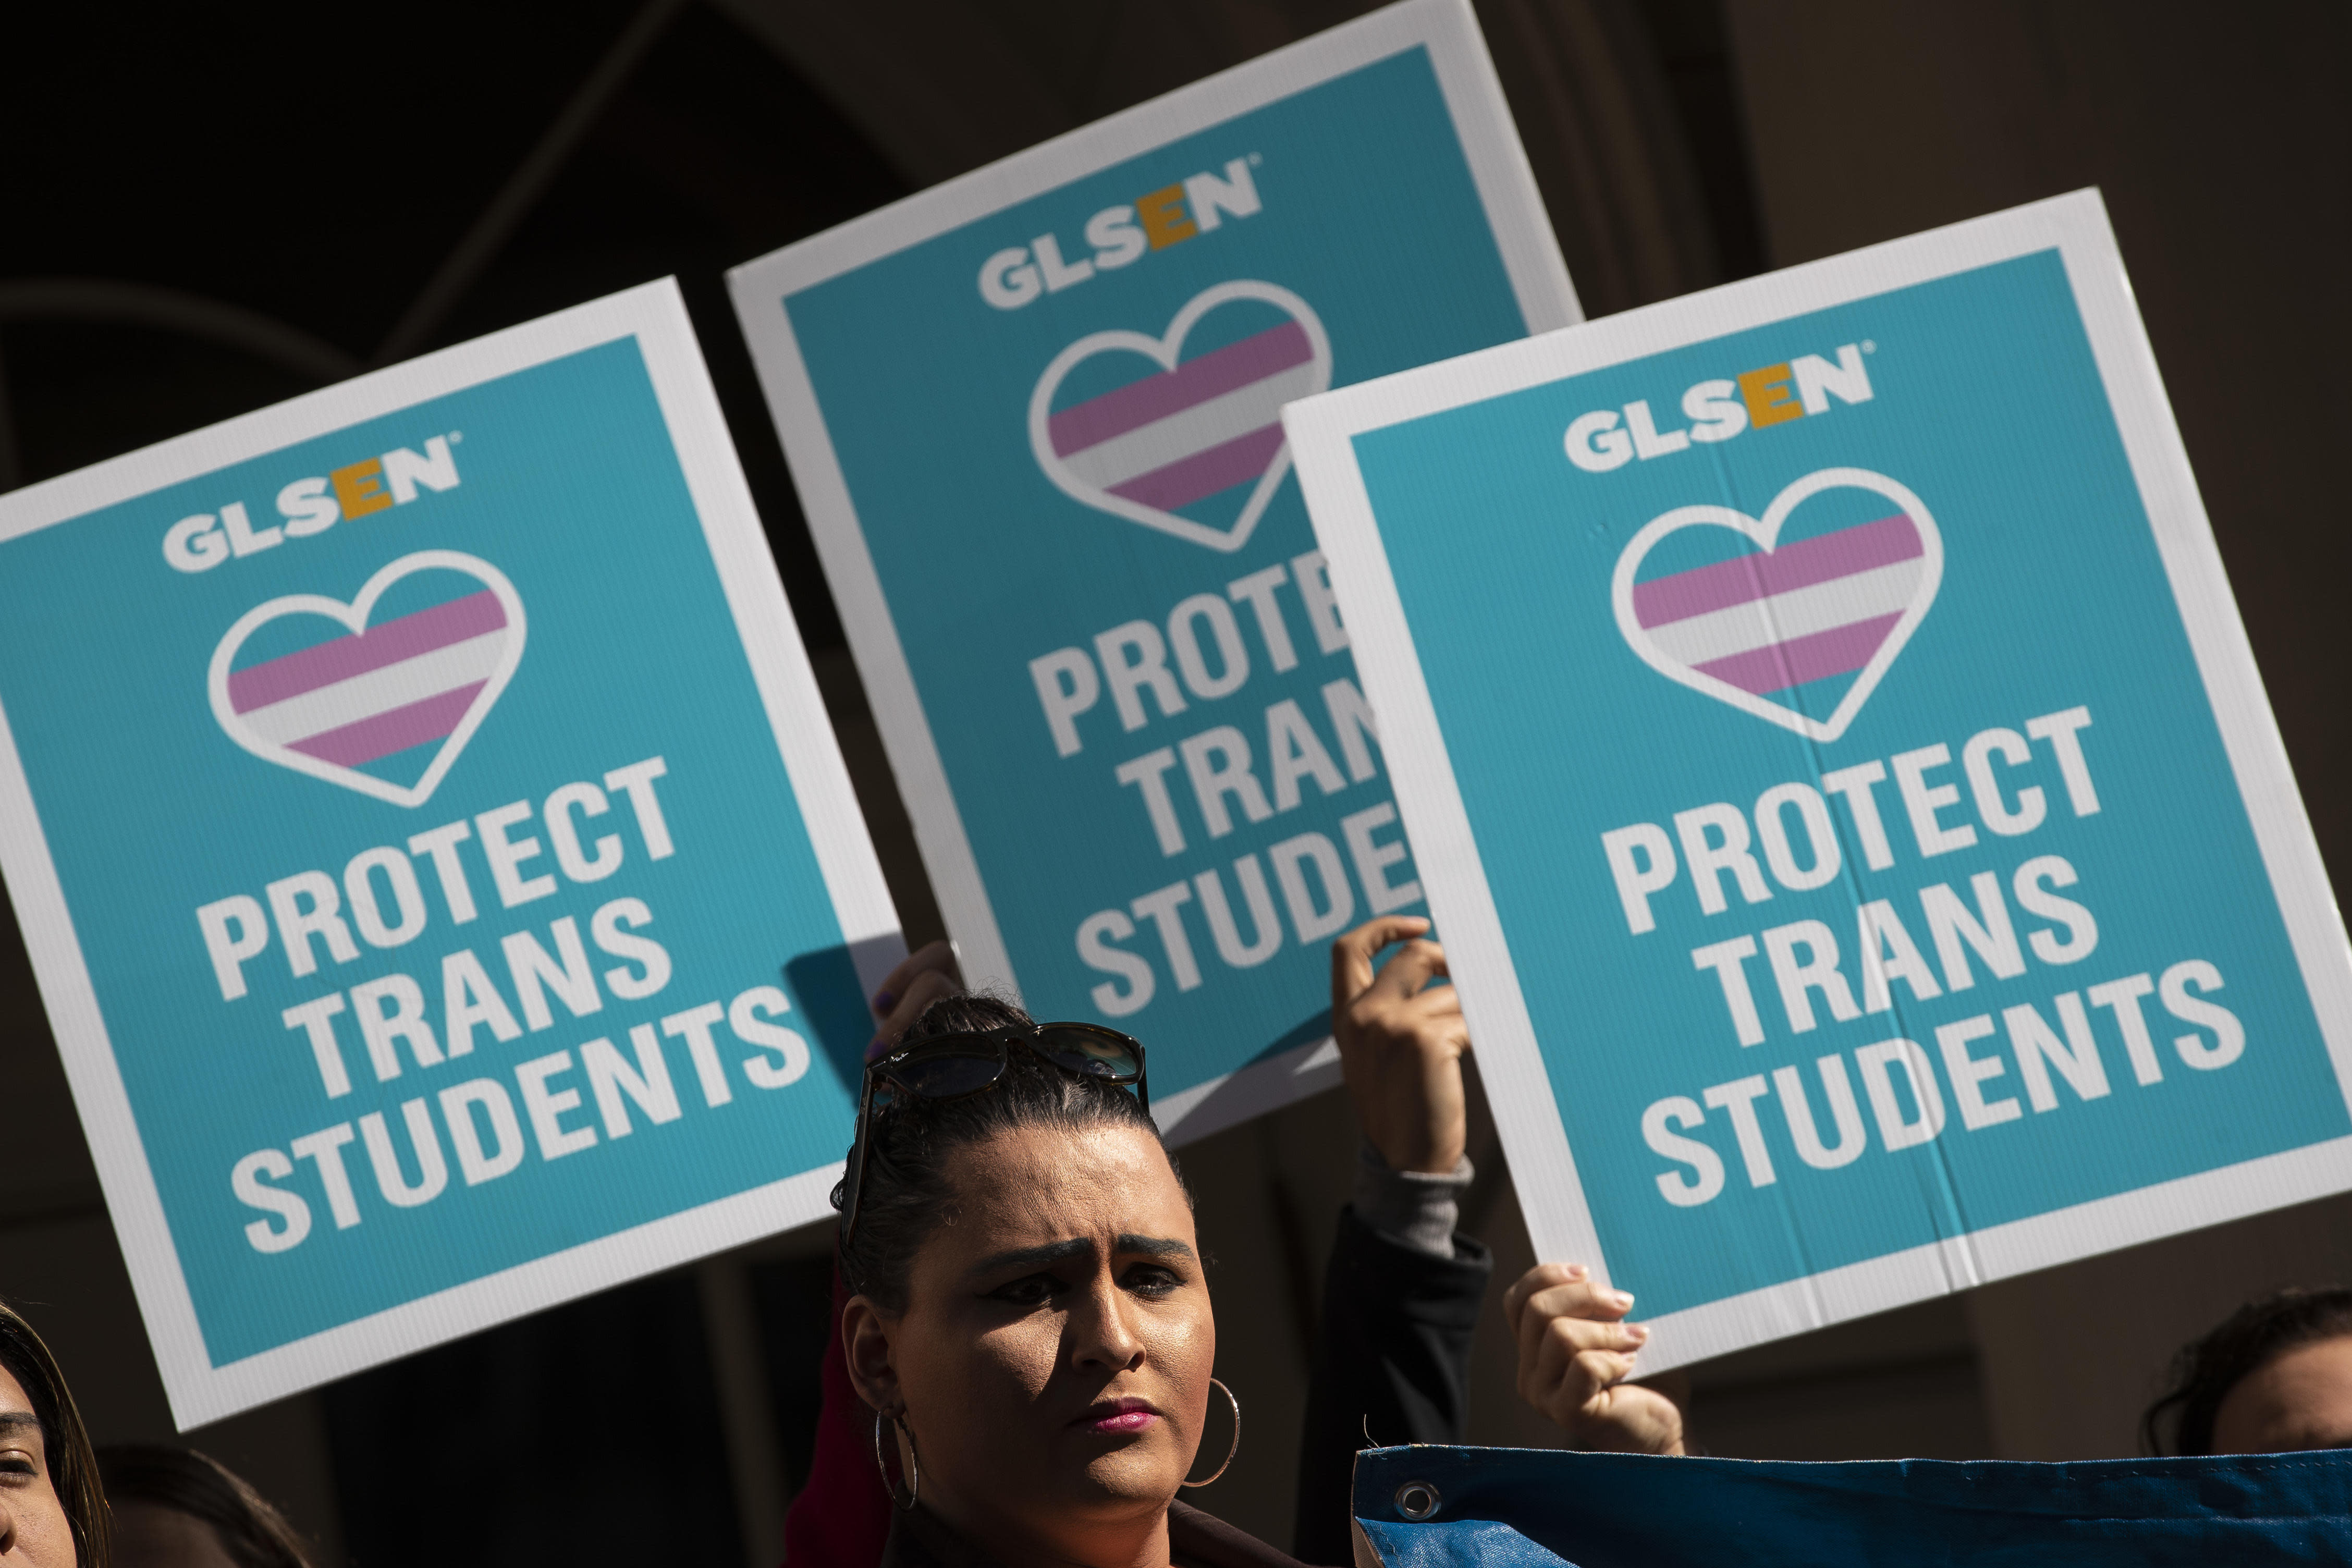 Schools must allow trans students to use bathrooms that match gender